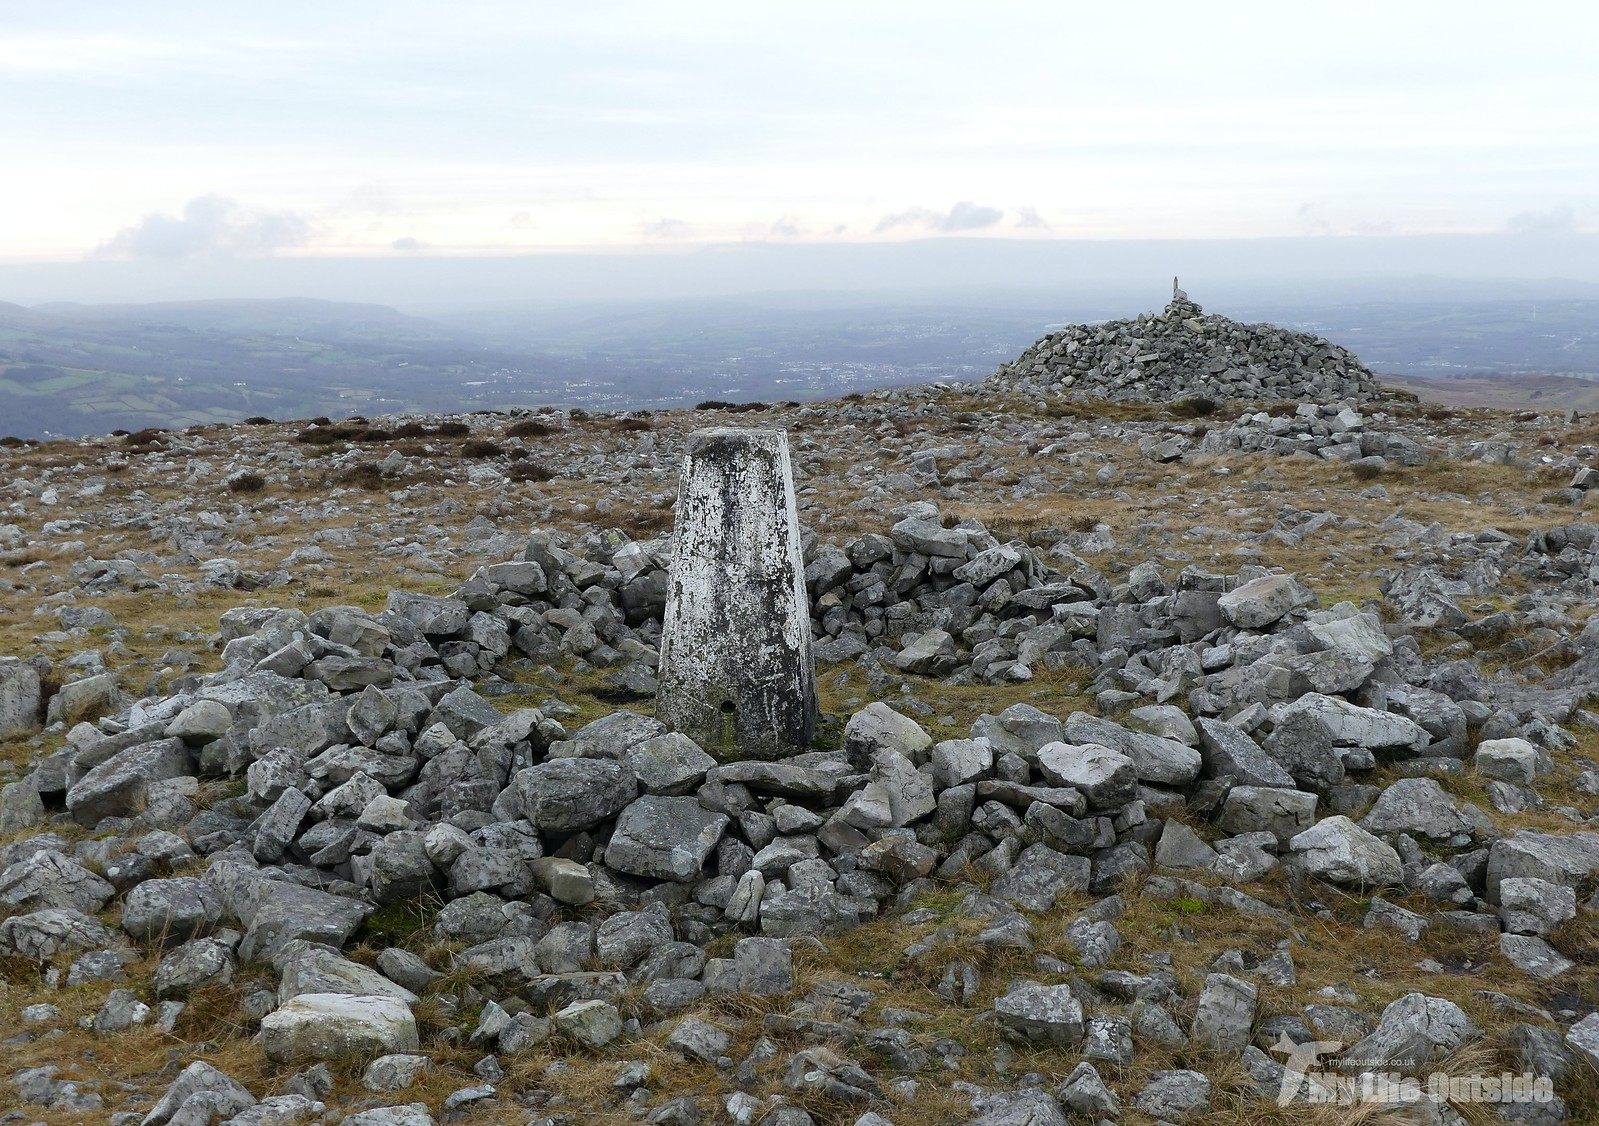 P1230107 - Tair Carn Isaf